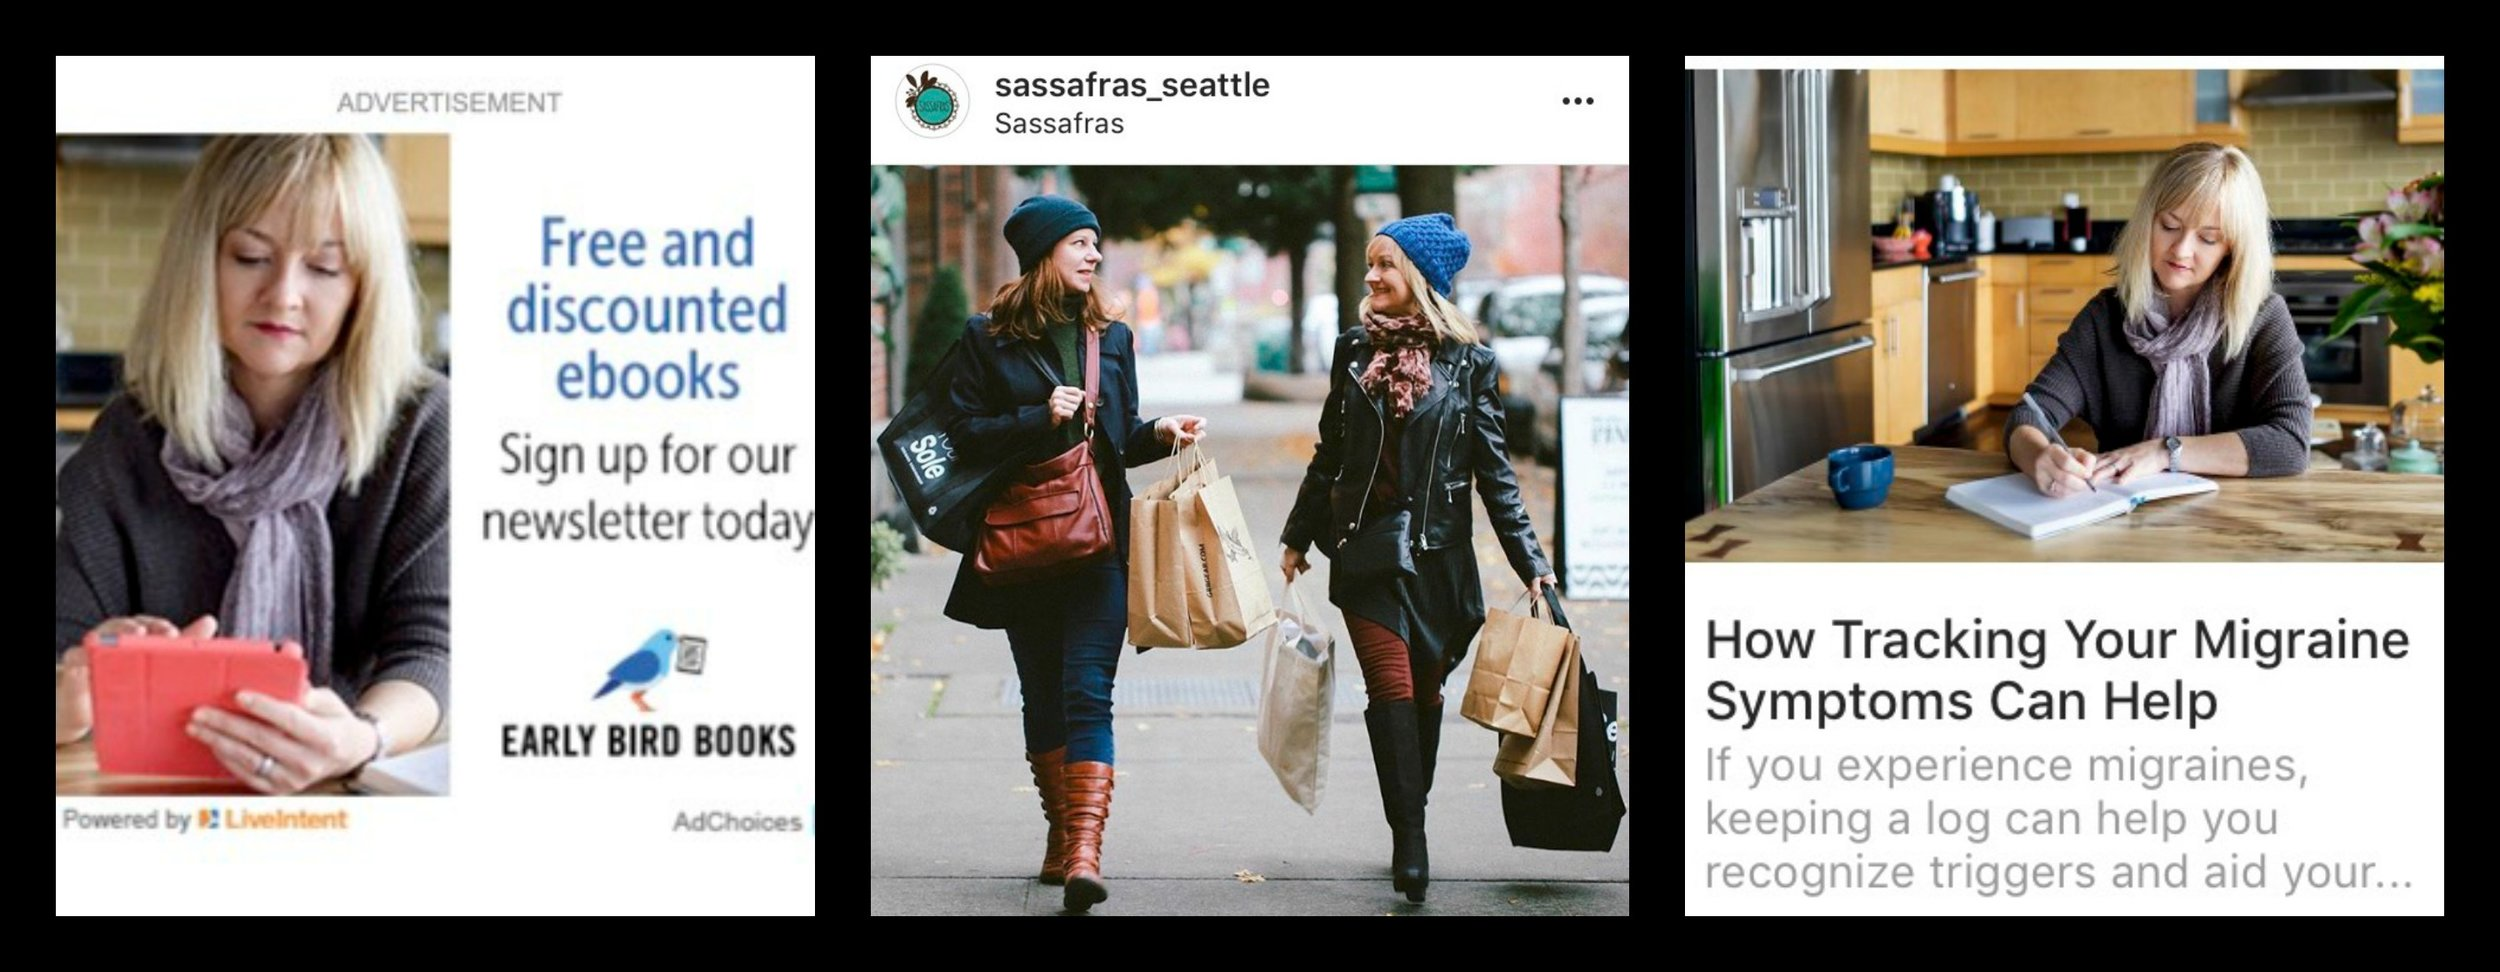 """Photographer, Supri Suharjoto of Take a Pix Media took the stock photos seen above used in an ebook ad seen in the New York Times and the migraine article. Maggie Sandner-Gialamas of Blue Hour Photography was the photographer for a """"Shop Local Seattle"""" campaign sponsored by Sassafras boutique in Seattle."""